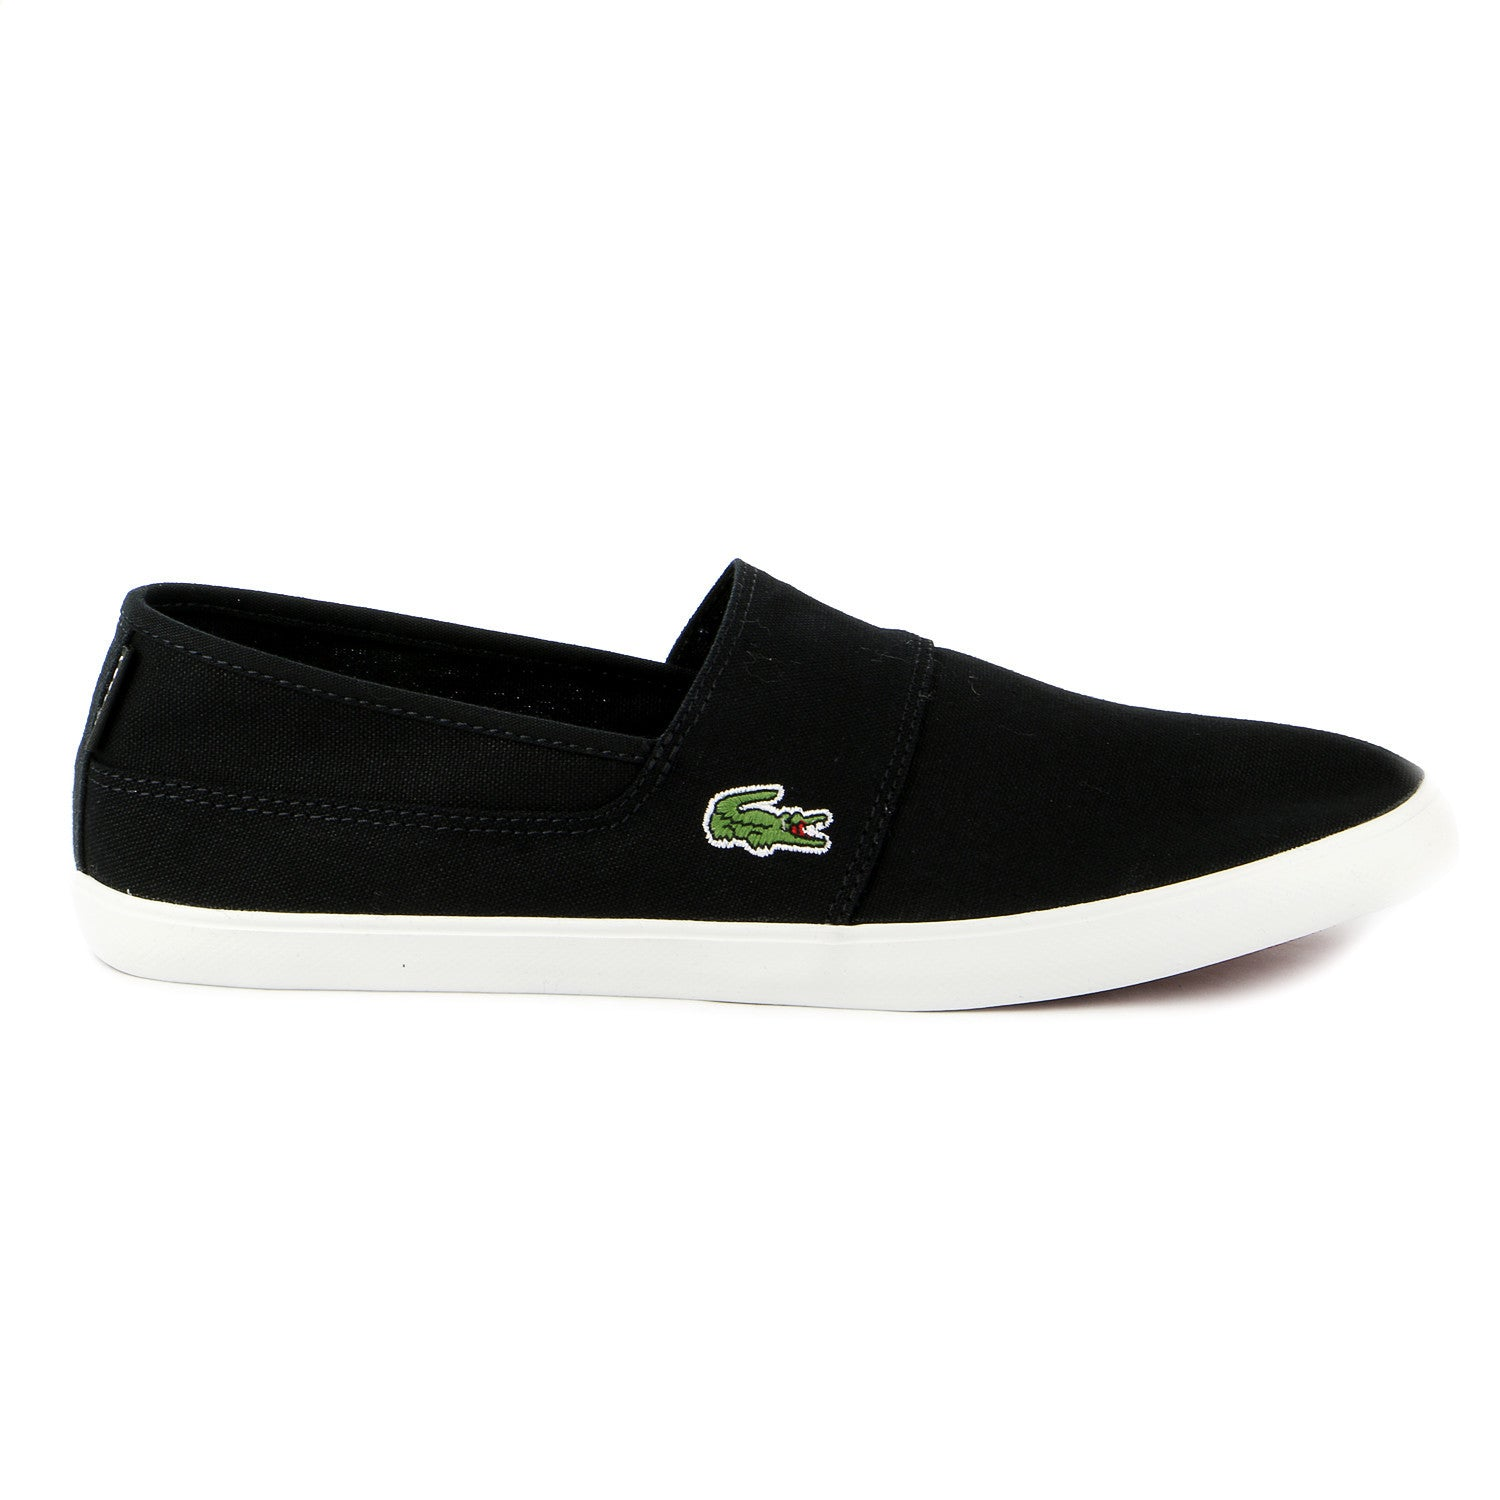 575aceff27425f Lacoste Marice LCR Fashion Sneaker Shoe - Black - Mens - Shoplifestyle